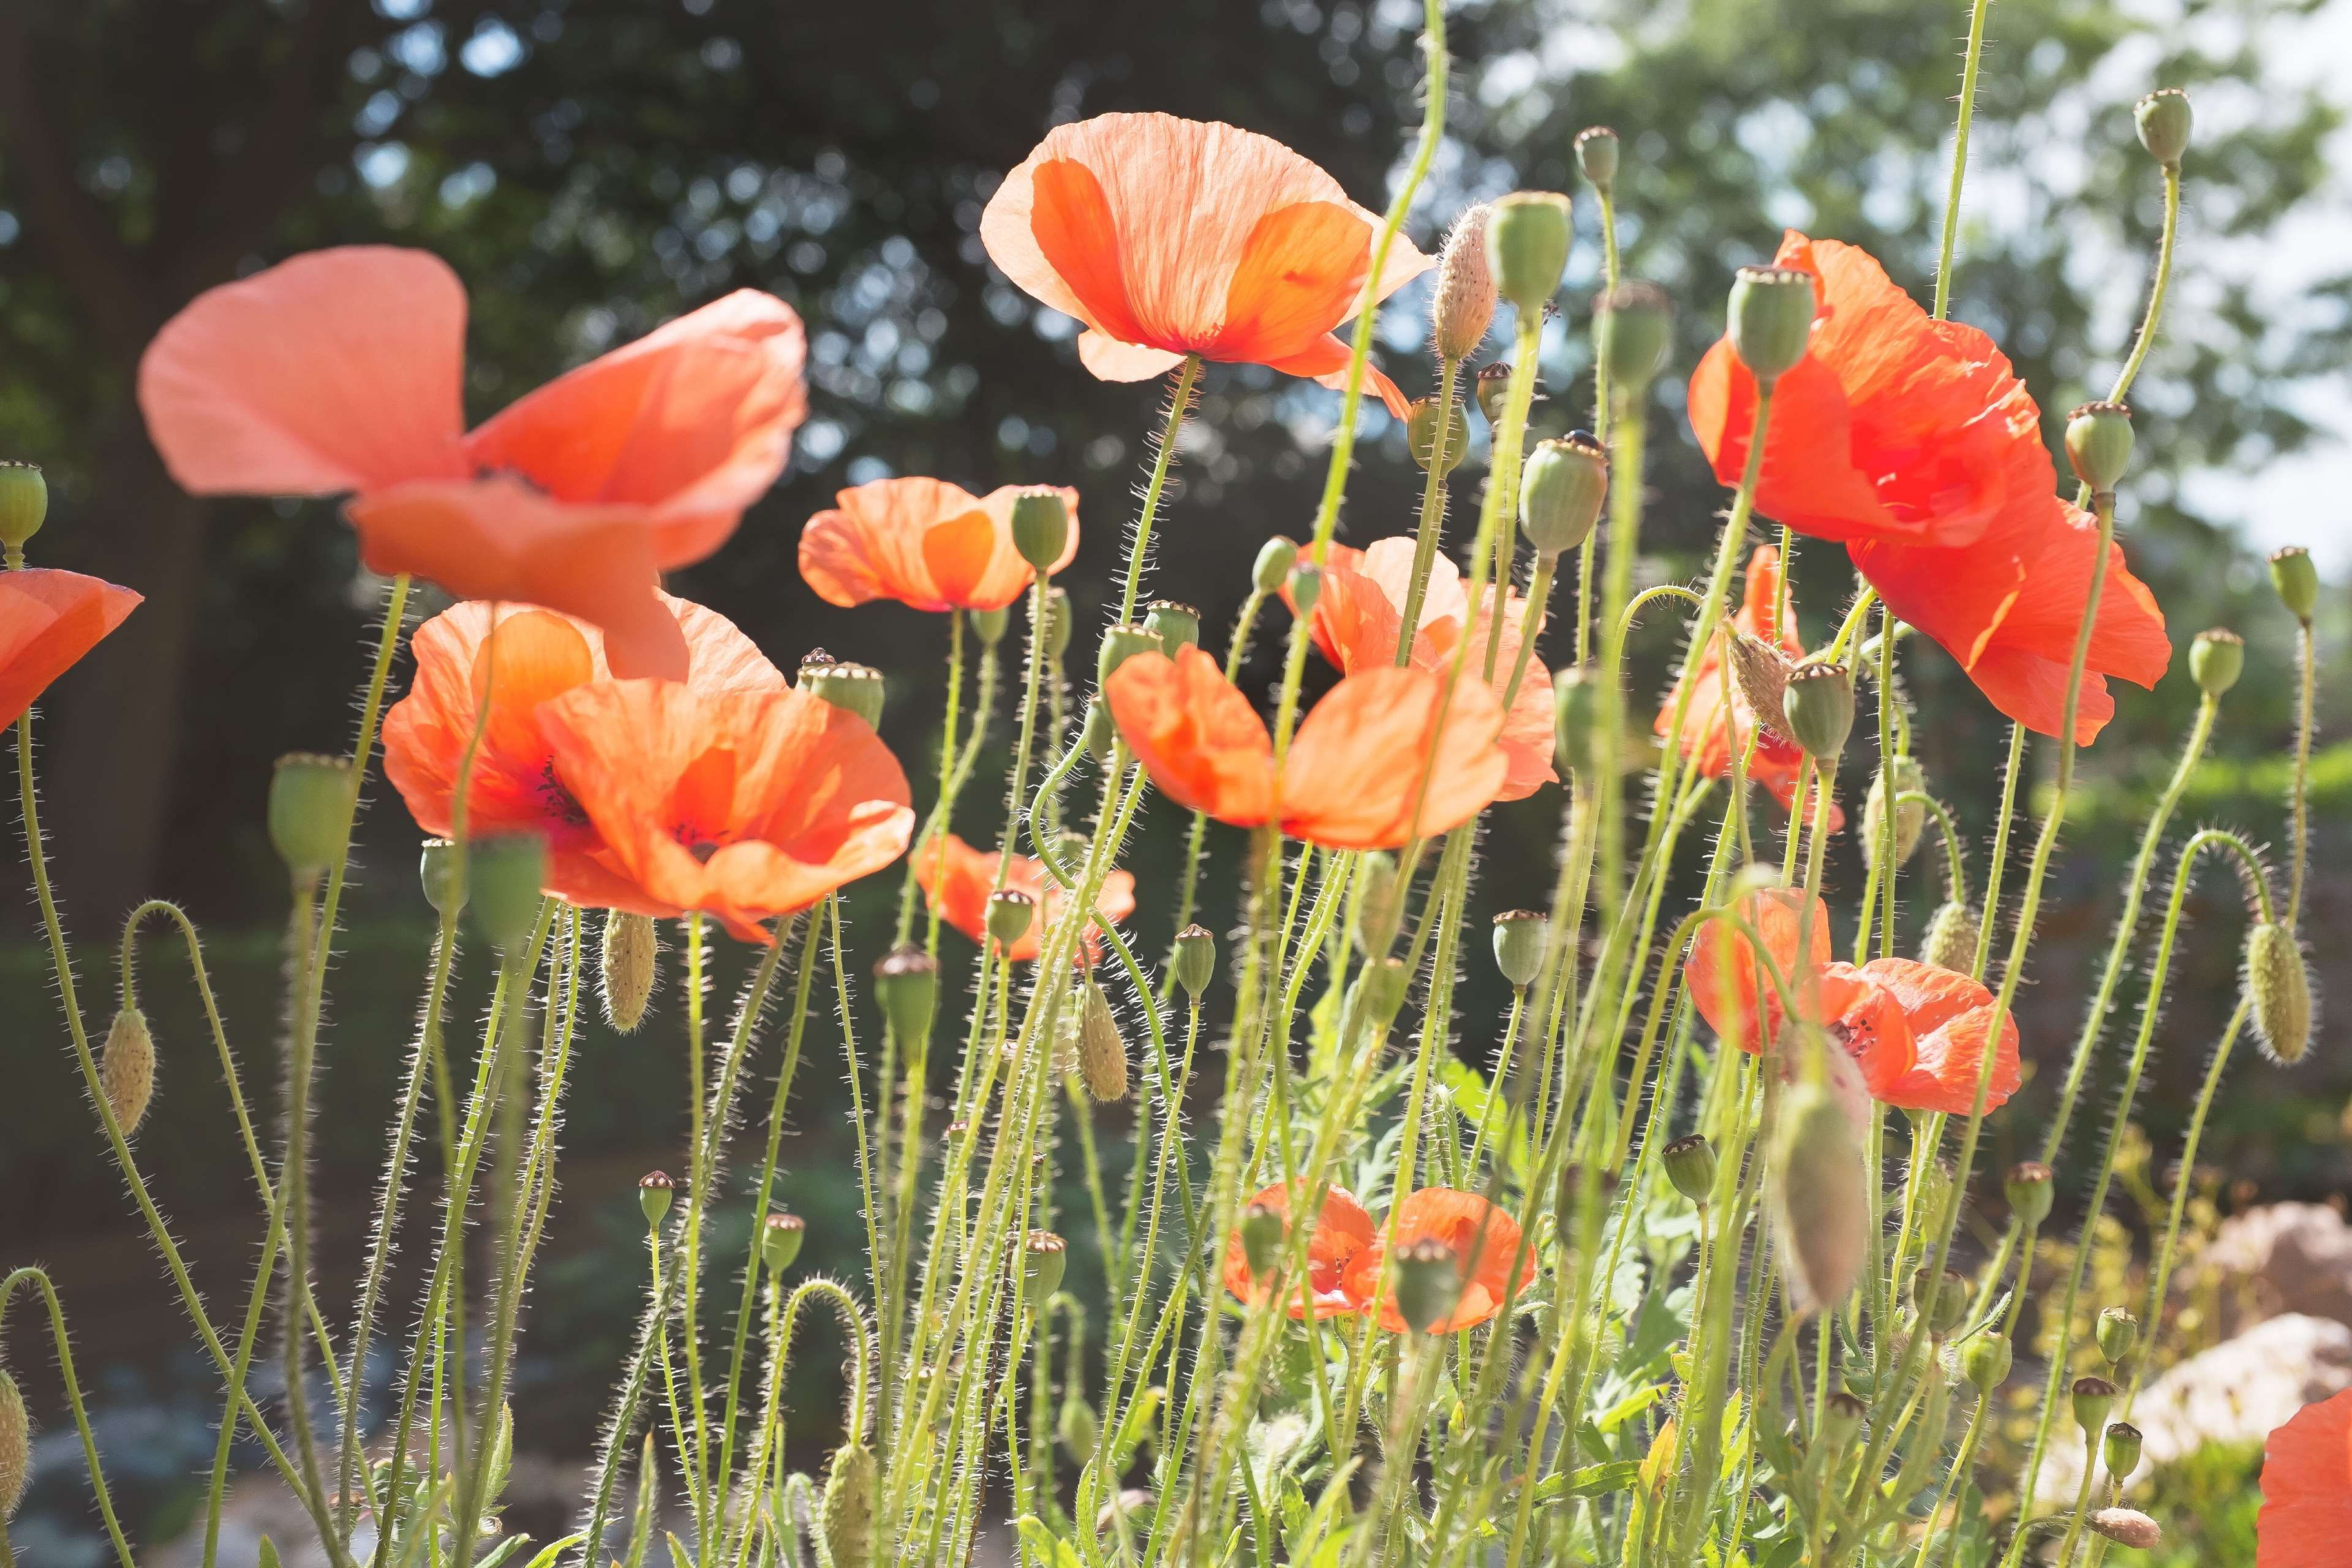 Flowers Nature Plant Poppy Red Wild Poppies Wallpapers And